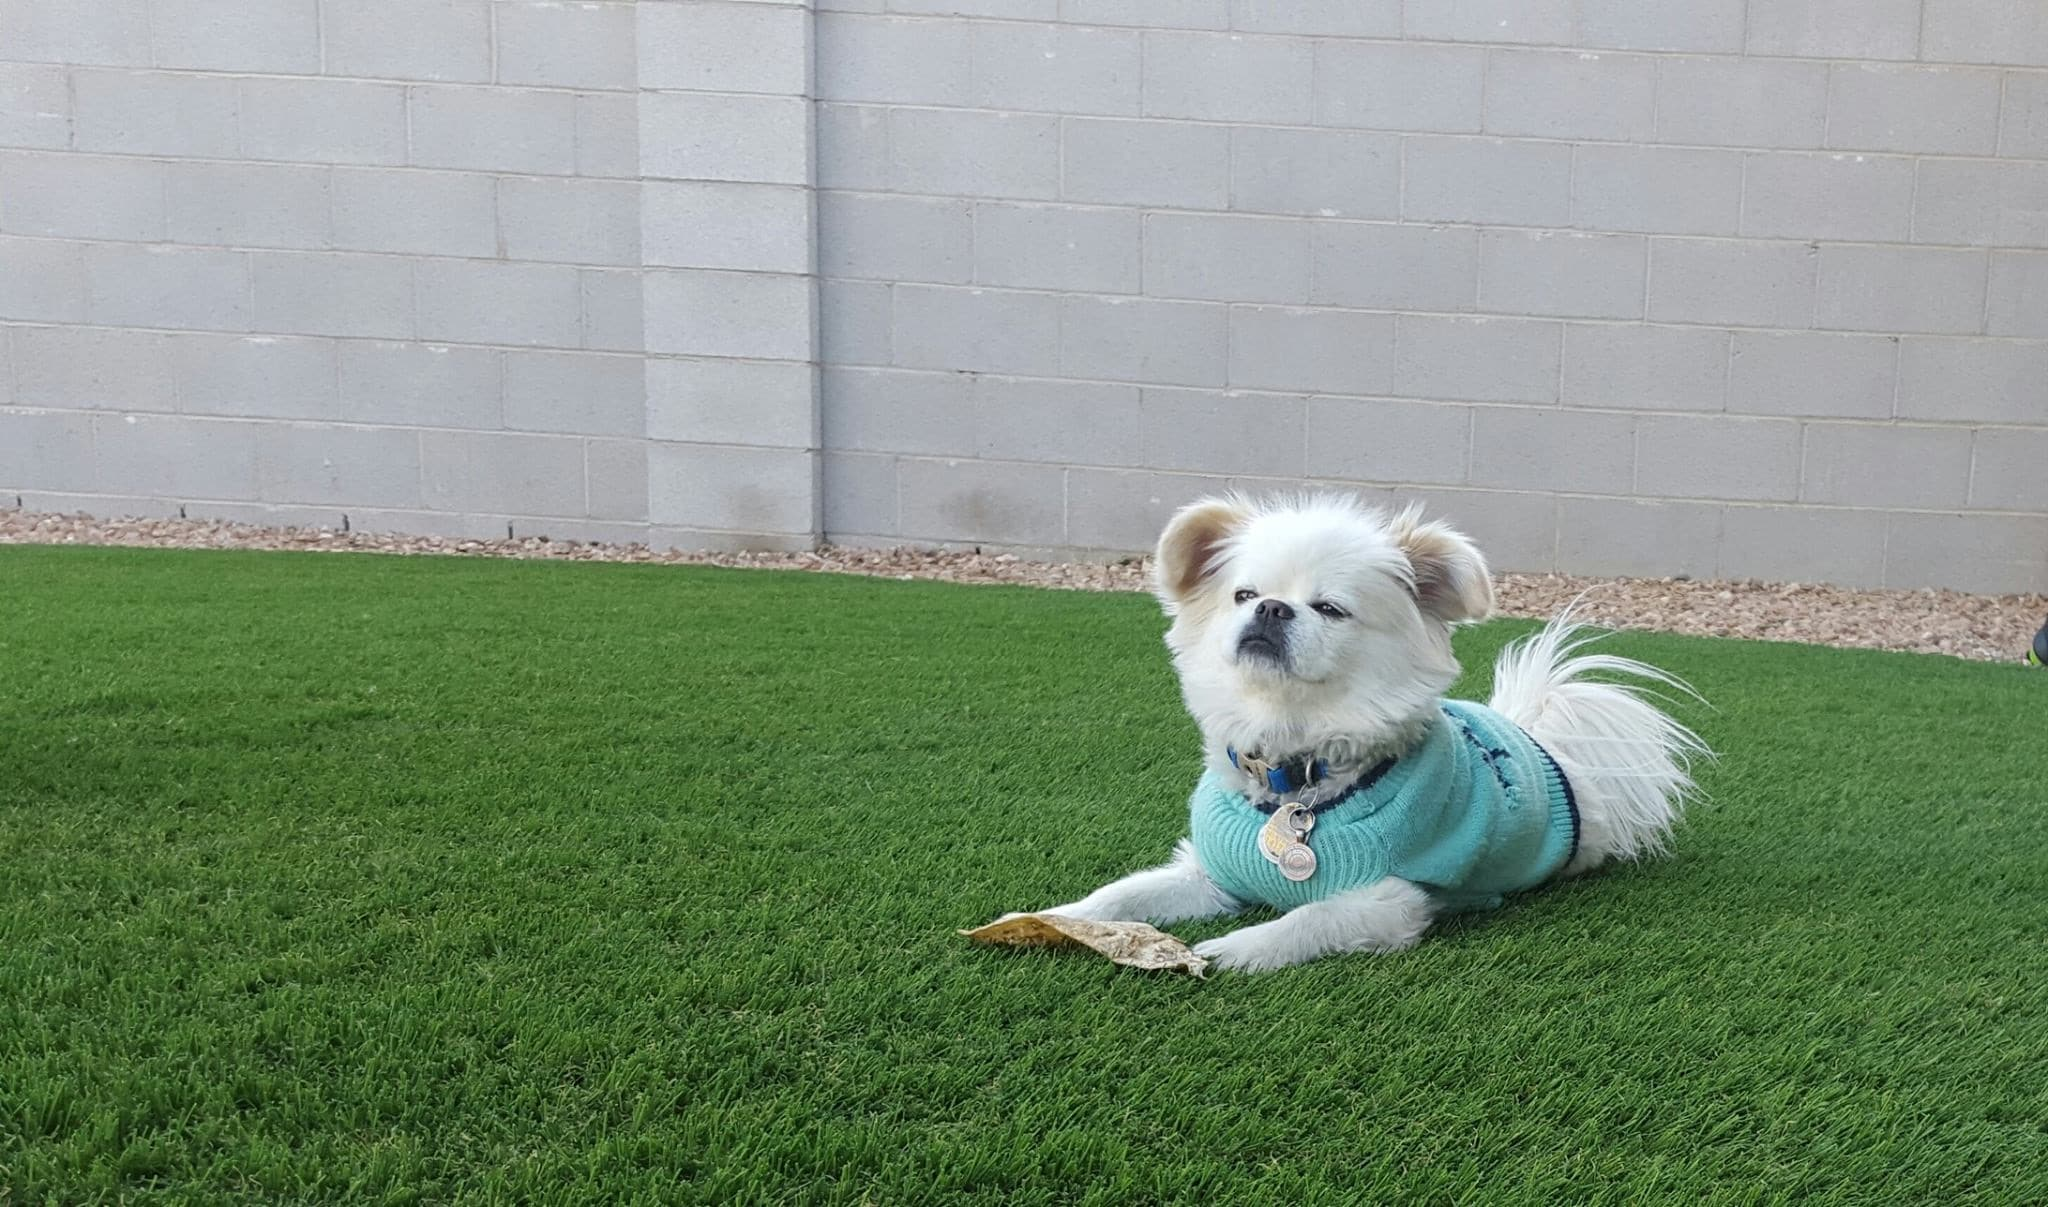 A Small Dog in a Blue Sweater Relaxes on Artificial Grass for Dogs